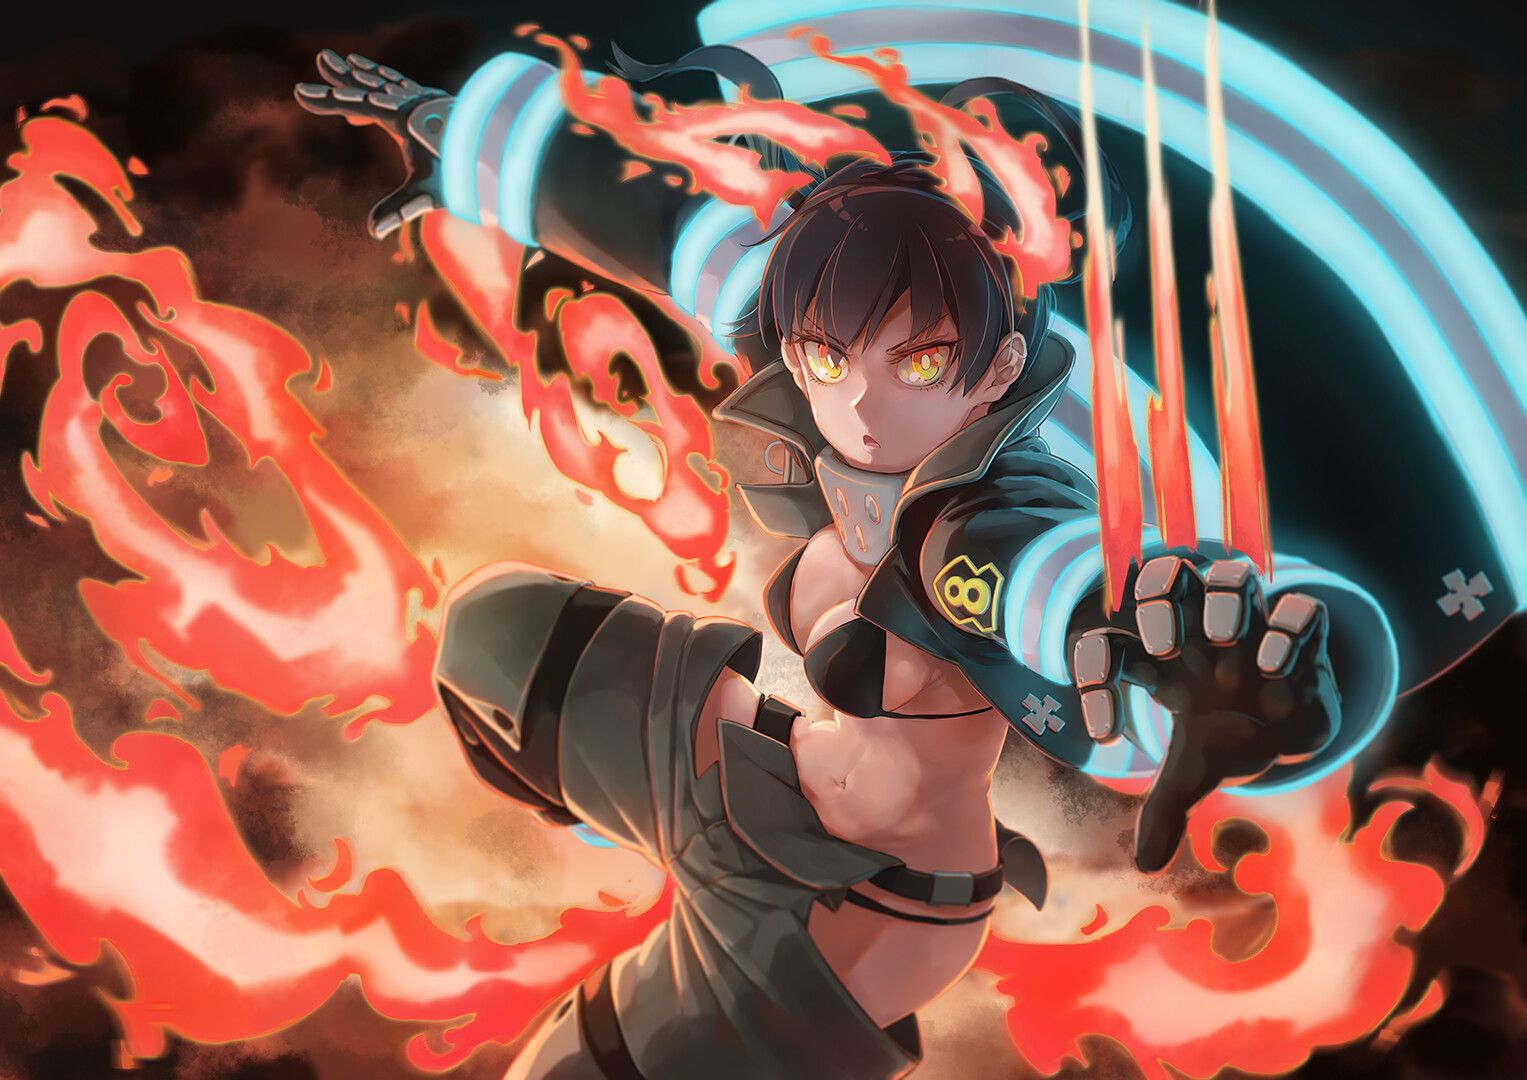 Fire Force Wallpapers Top Free Fire Force Backgrounds Wallpaperaccess 1200 x 675 jpeg 154 кб. fire force wallpapers top free fire